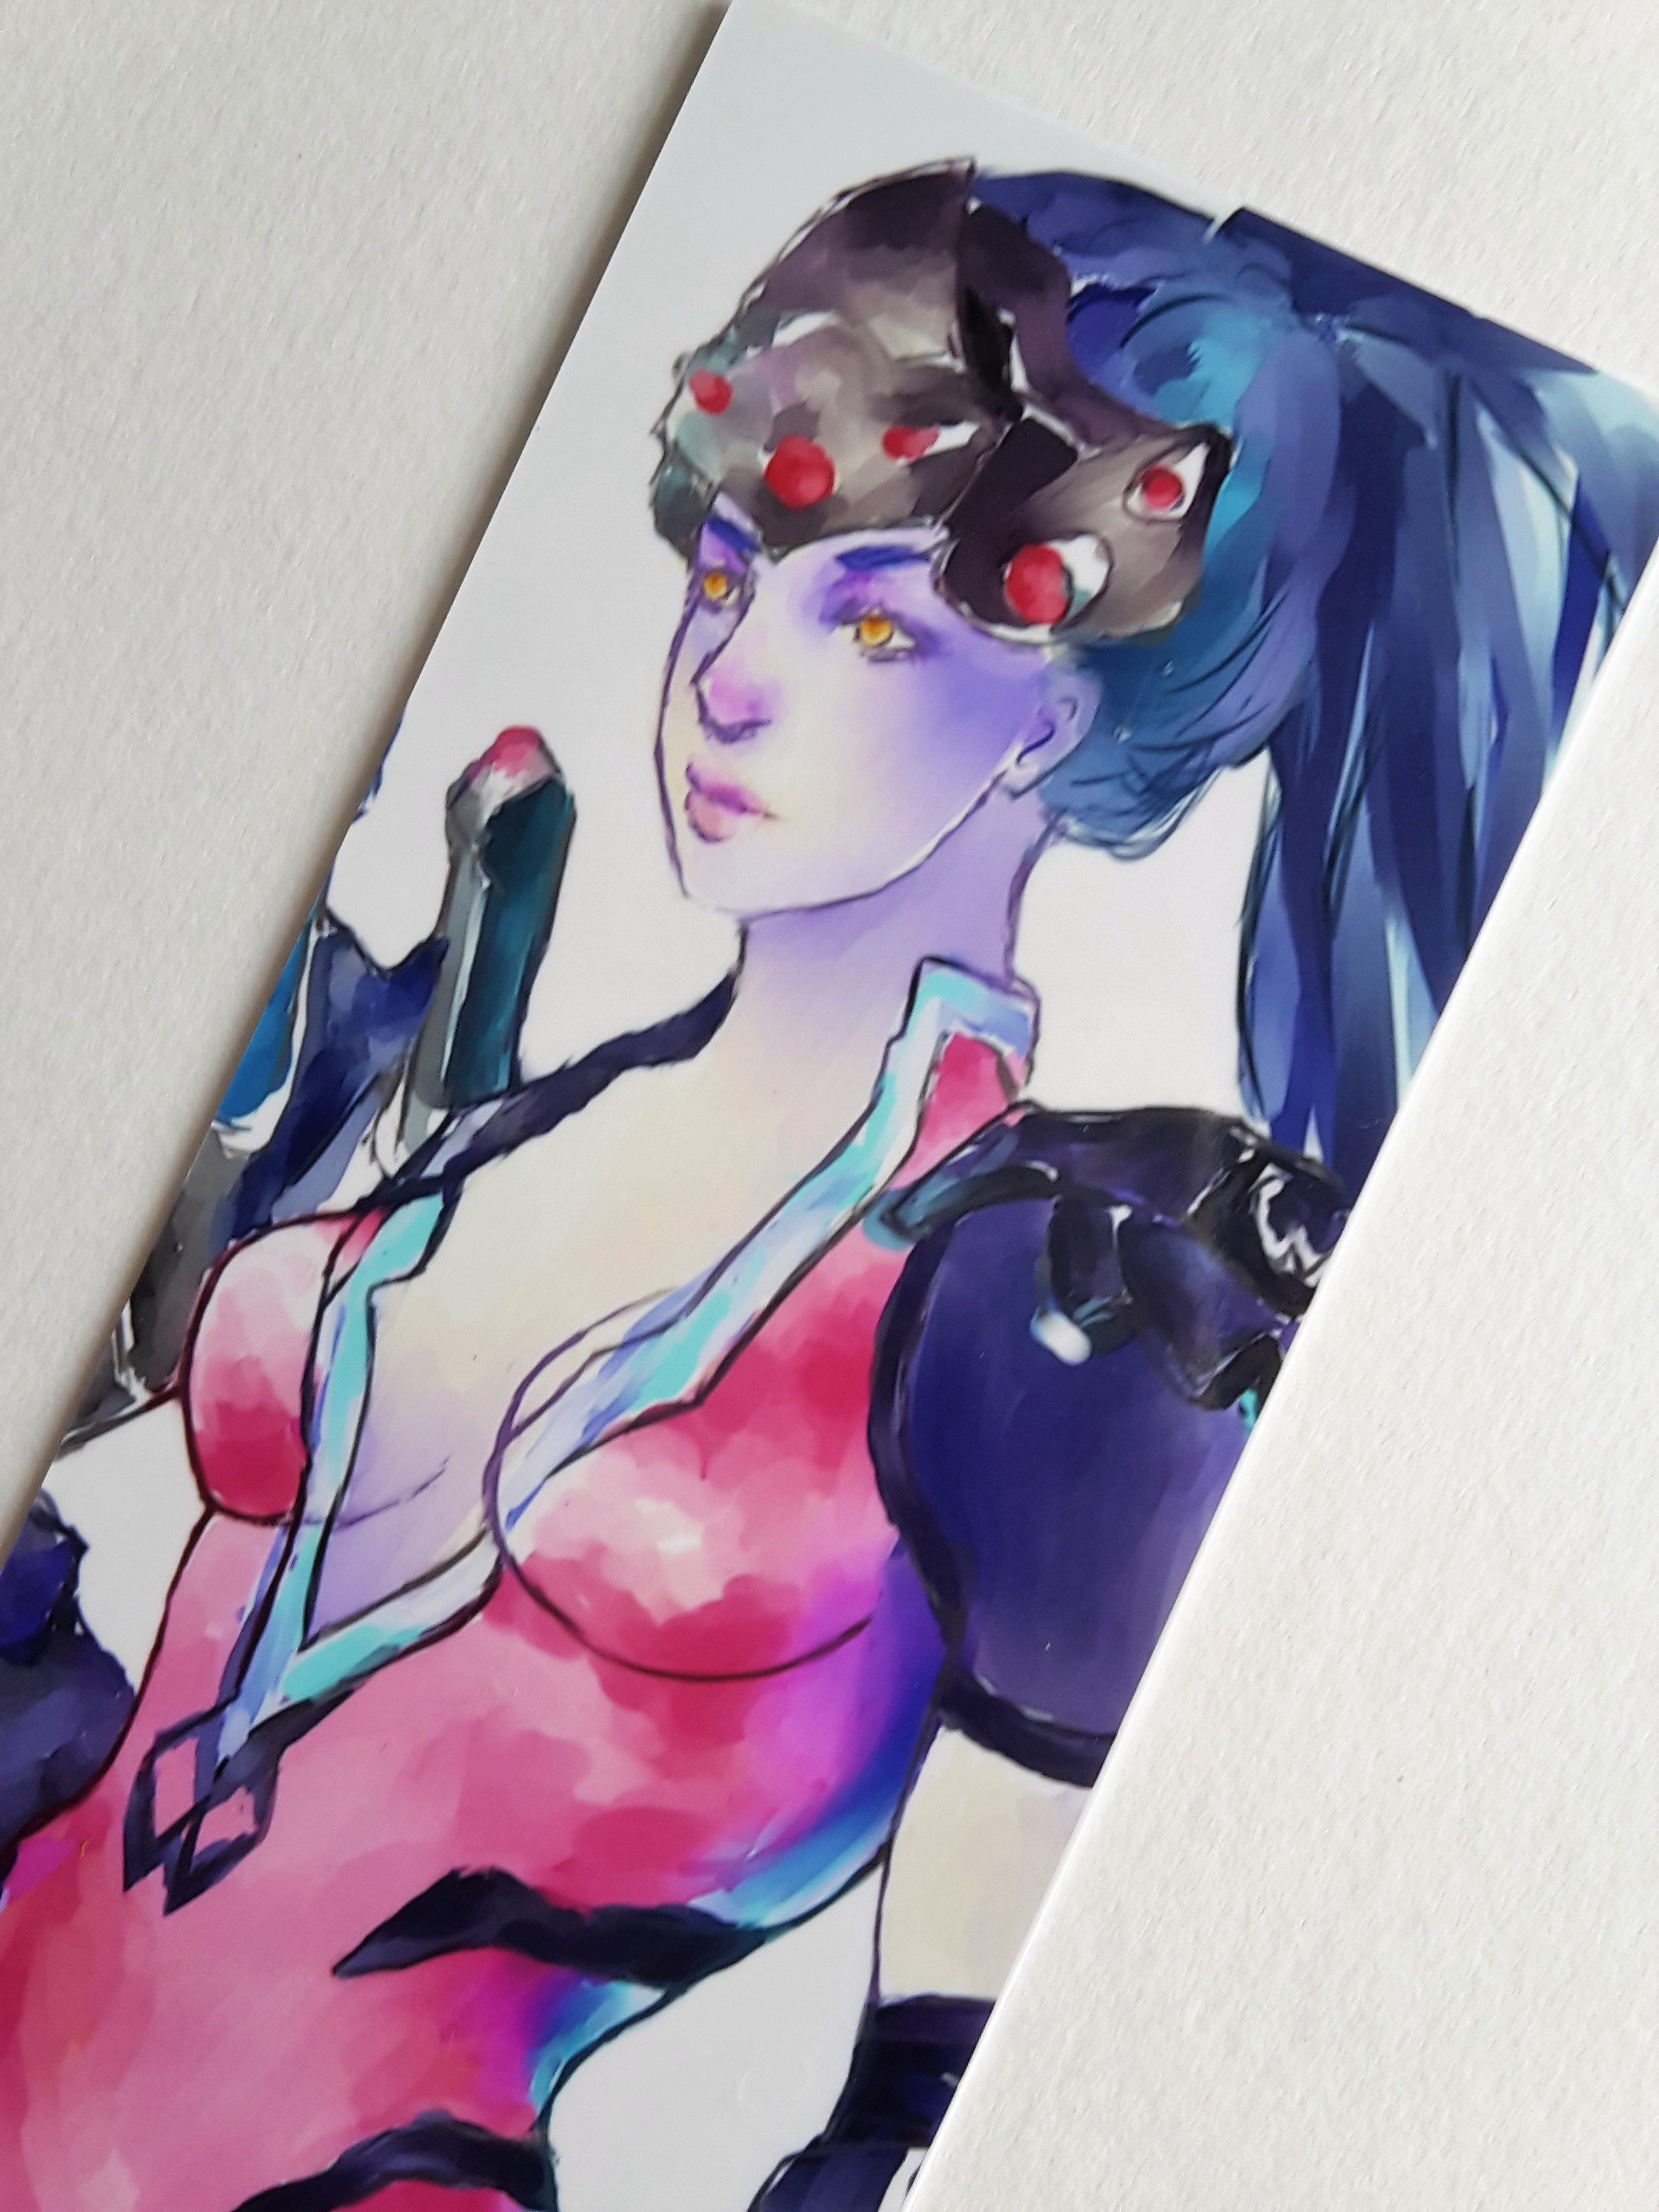 girl overwatch books reading decor game digital bookmark artist widowmaker diy fanart sexy handmade color drawing painting art